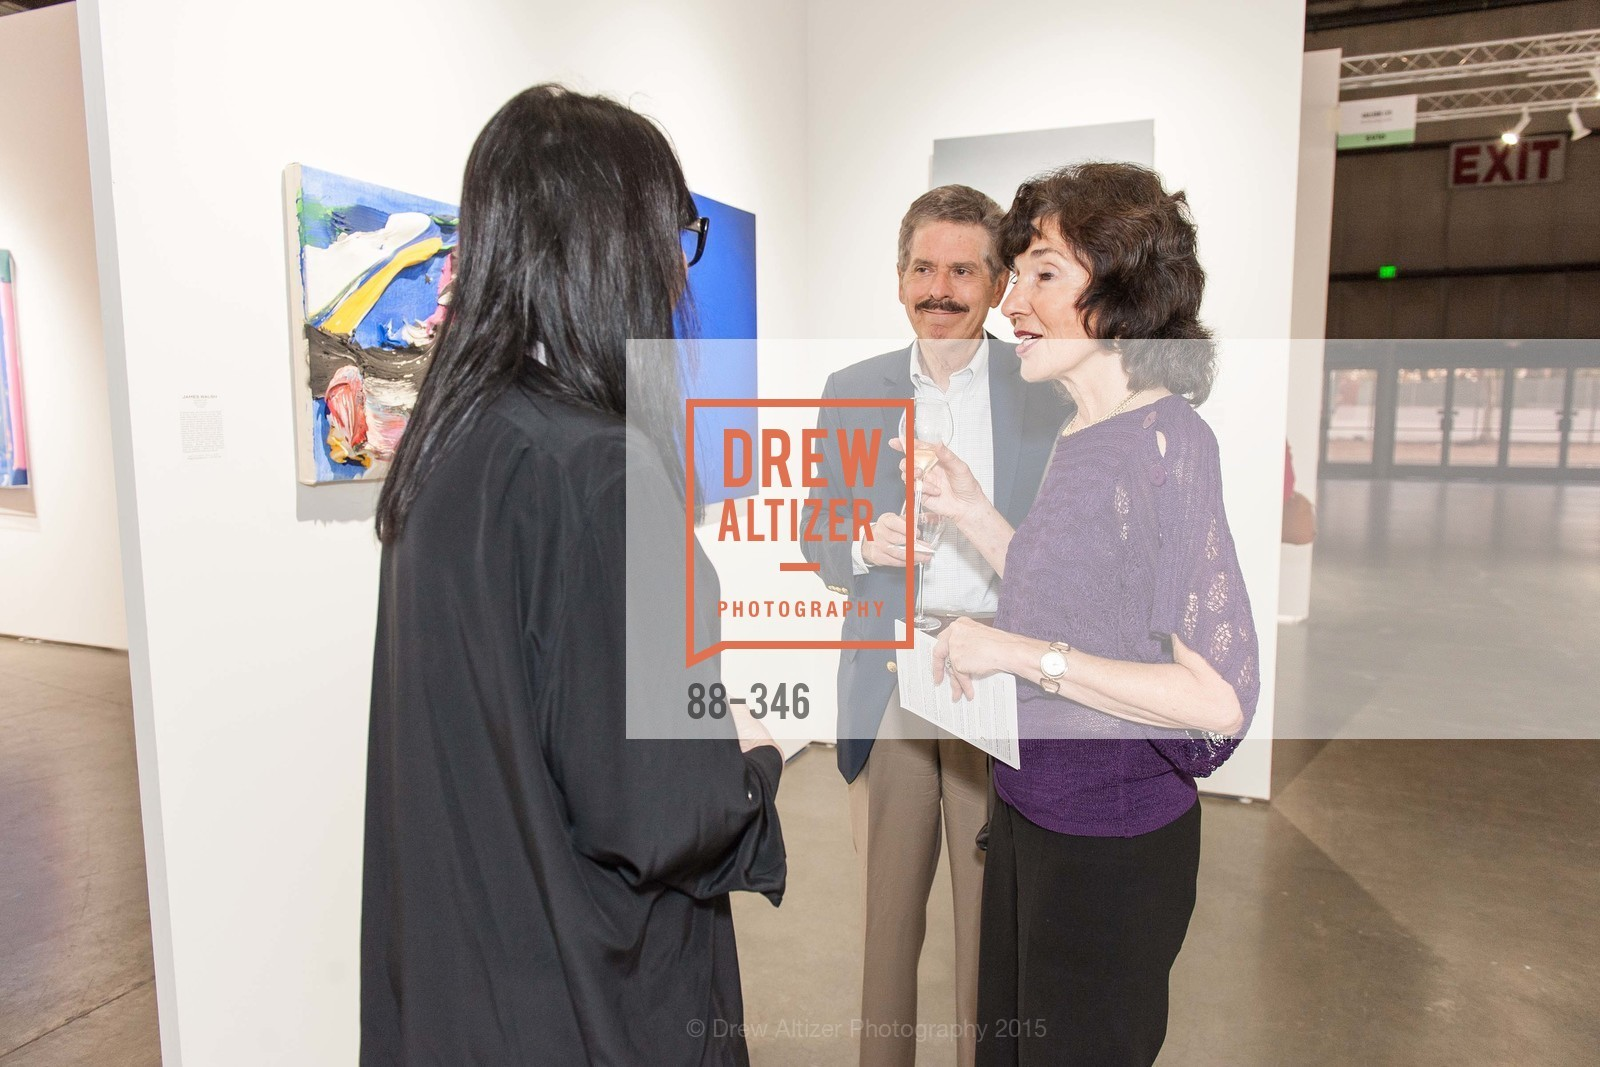 Alan Melnicoe, Shirley Melnicoe, Art Miami Presents: Art Silicon Valley, San Mateo County Event Center. 1346 Saratoga Dr, October 8th, 2015,Drew Altizer, Drew Altizer Photography, full-service agency, private events, San Francisco photographer, photographer california